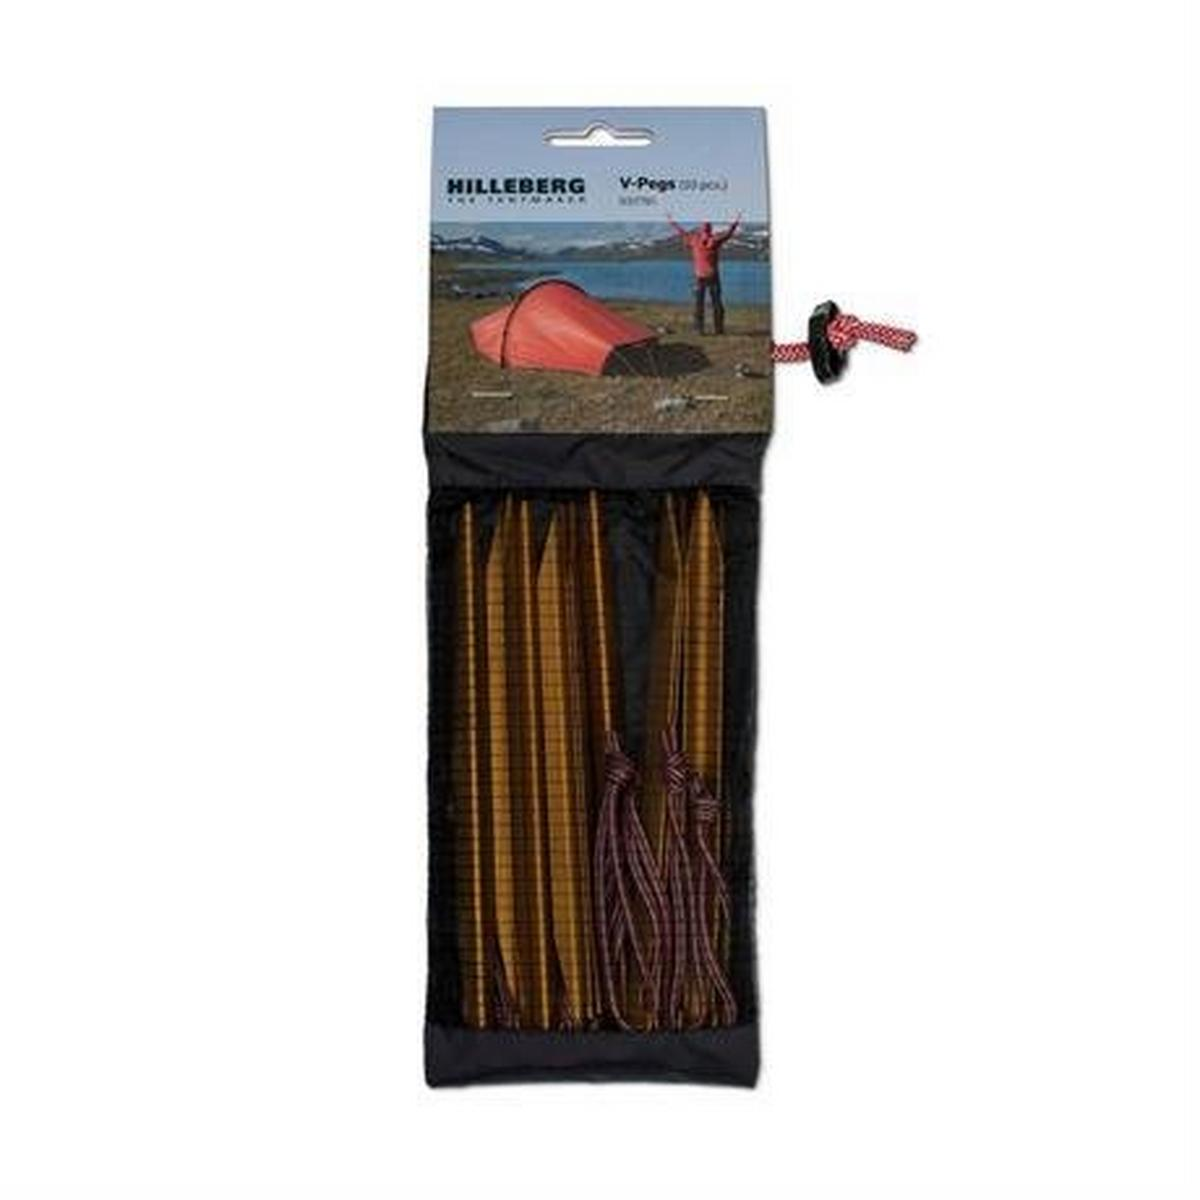 Hilleberg Tent Spare/Accessory Pegs (V-Pegs) Pack of 10